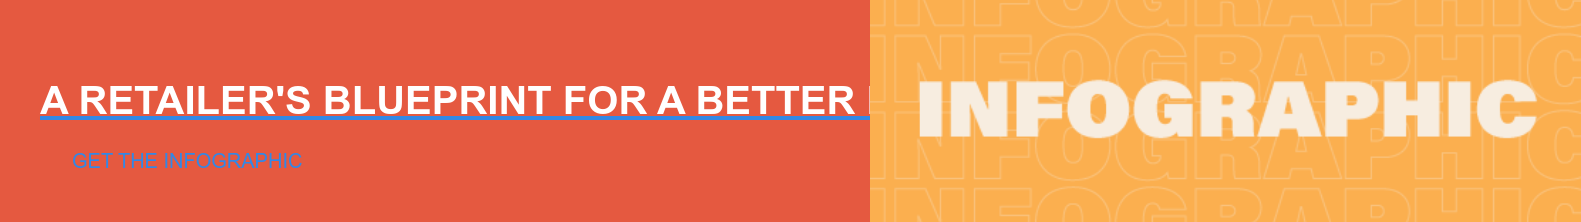 A RETAILER'S BLUEPRINT FOR A BETTER DIGITAL COMMERCE EXPERIENCE Get the Infographic